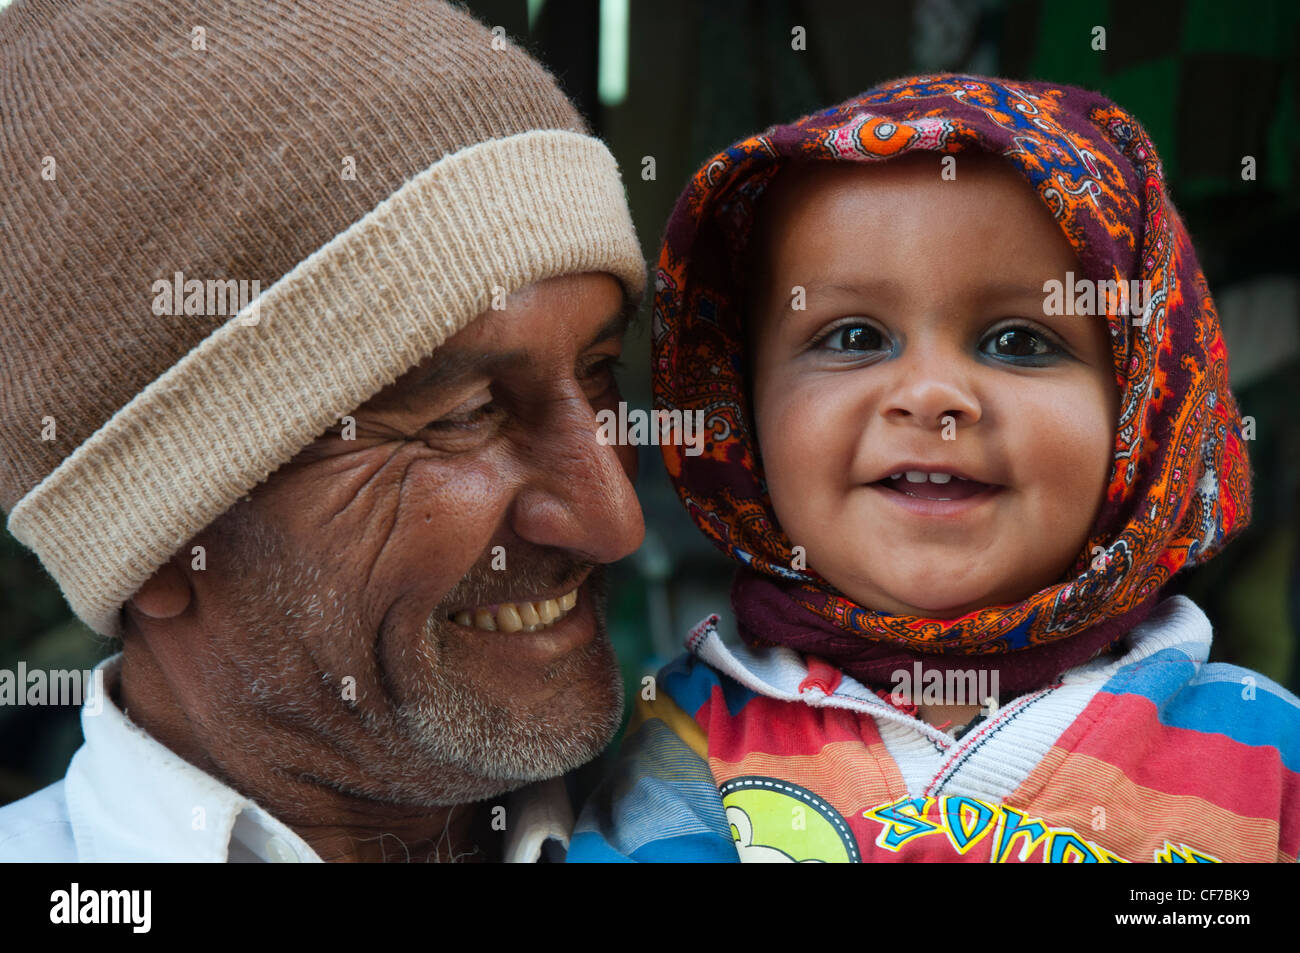 Father and child in Bhuj, Kutch, Gujarat, India - Stock Image